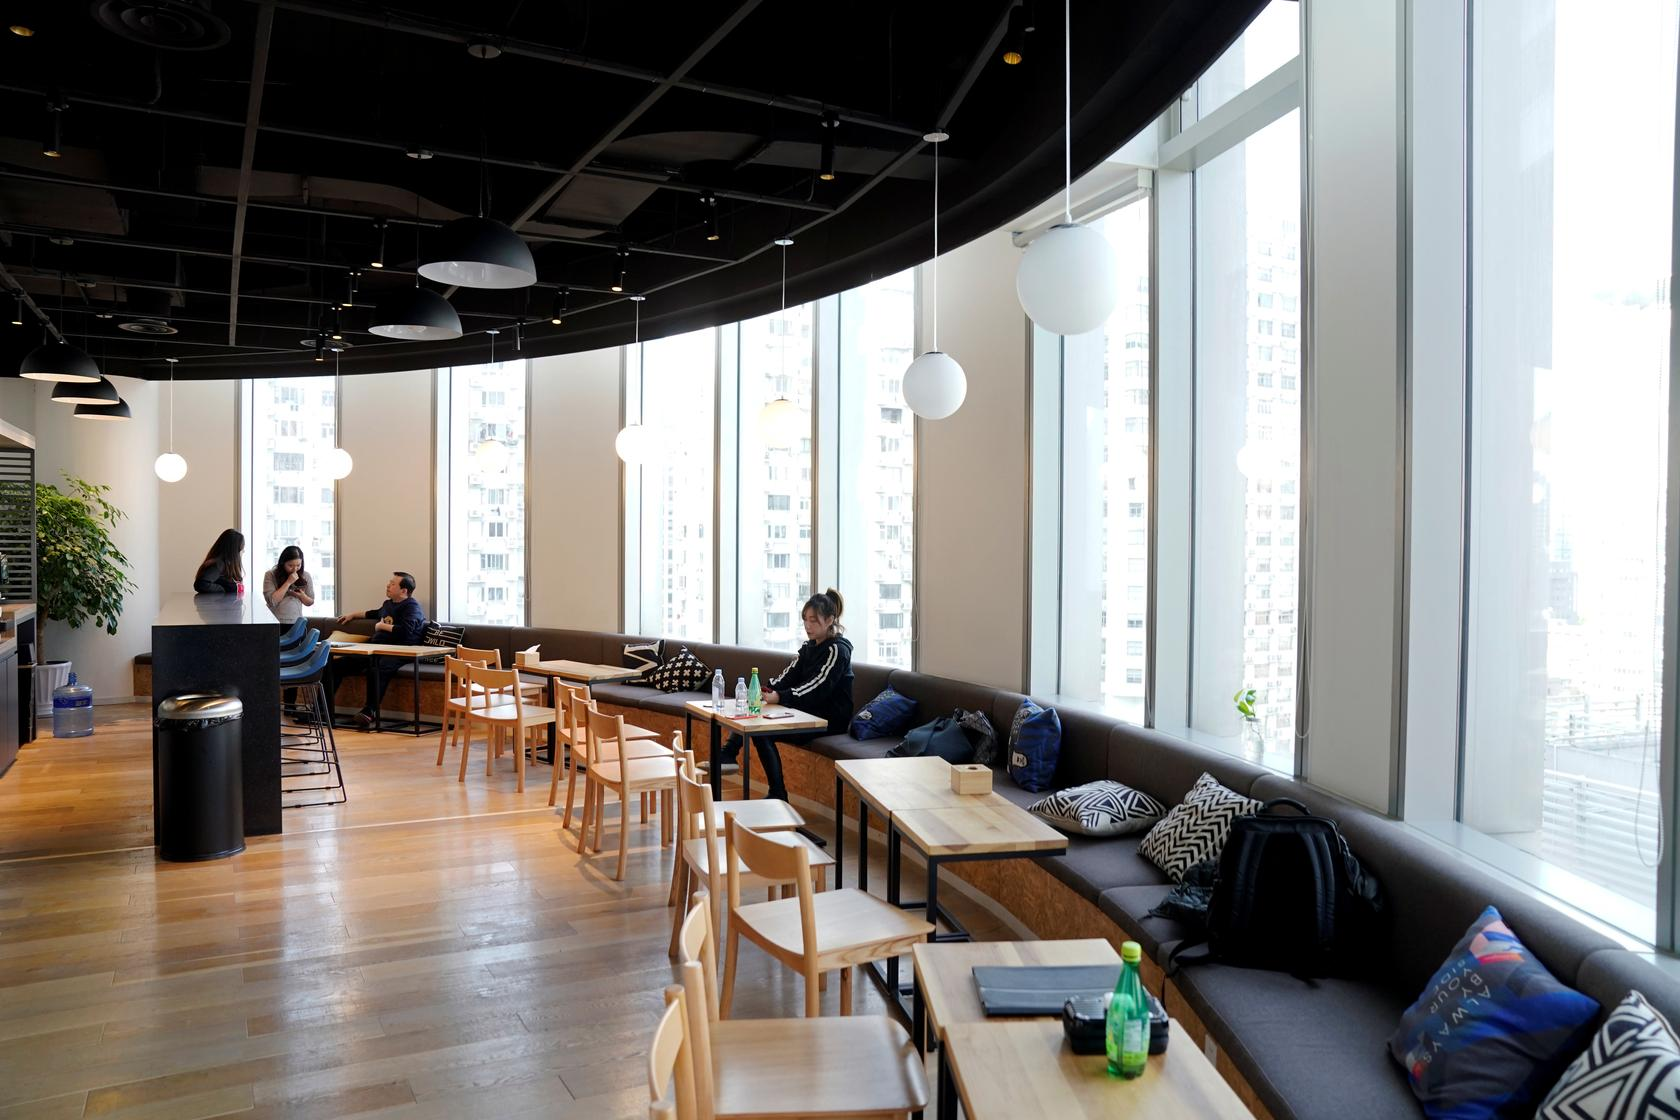 China's Wework Ucommune Plans to launch Its IPO in New York Exchange